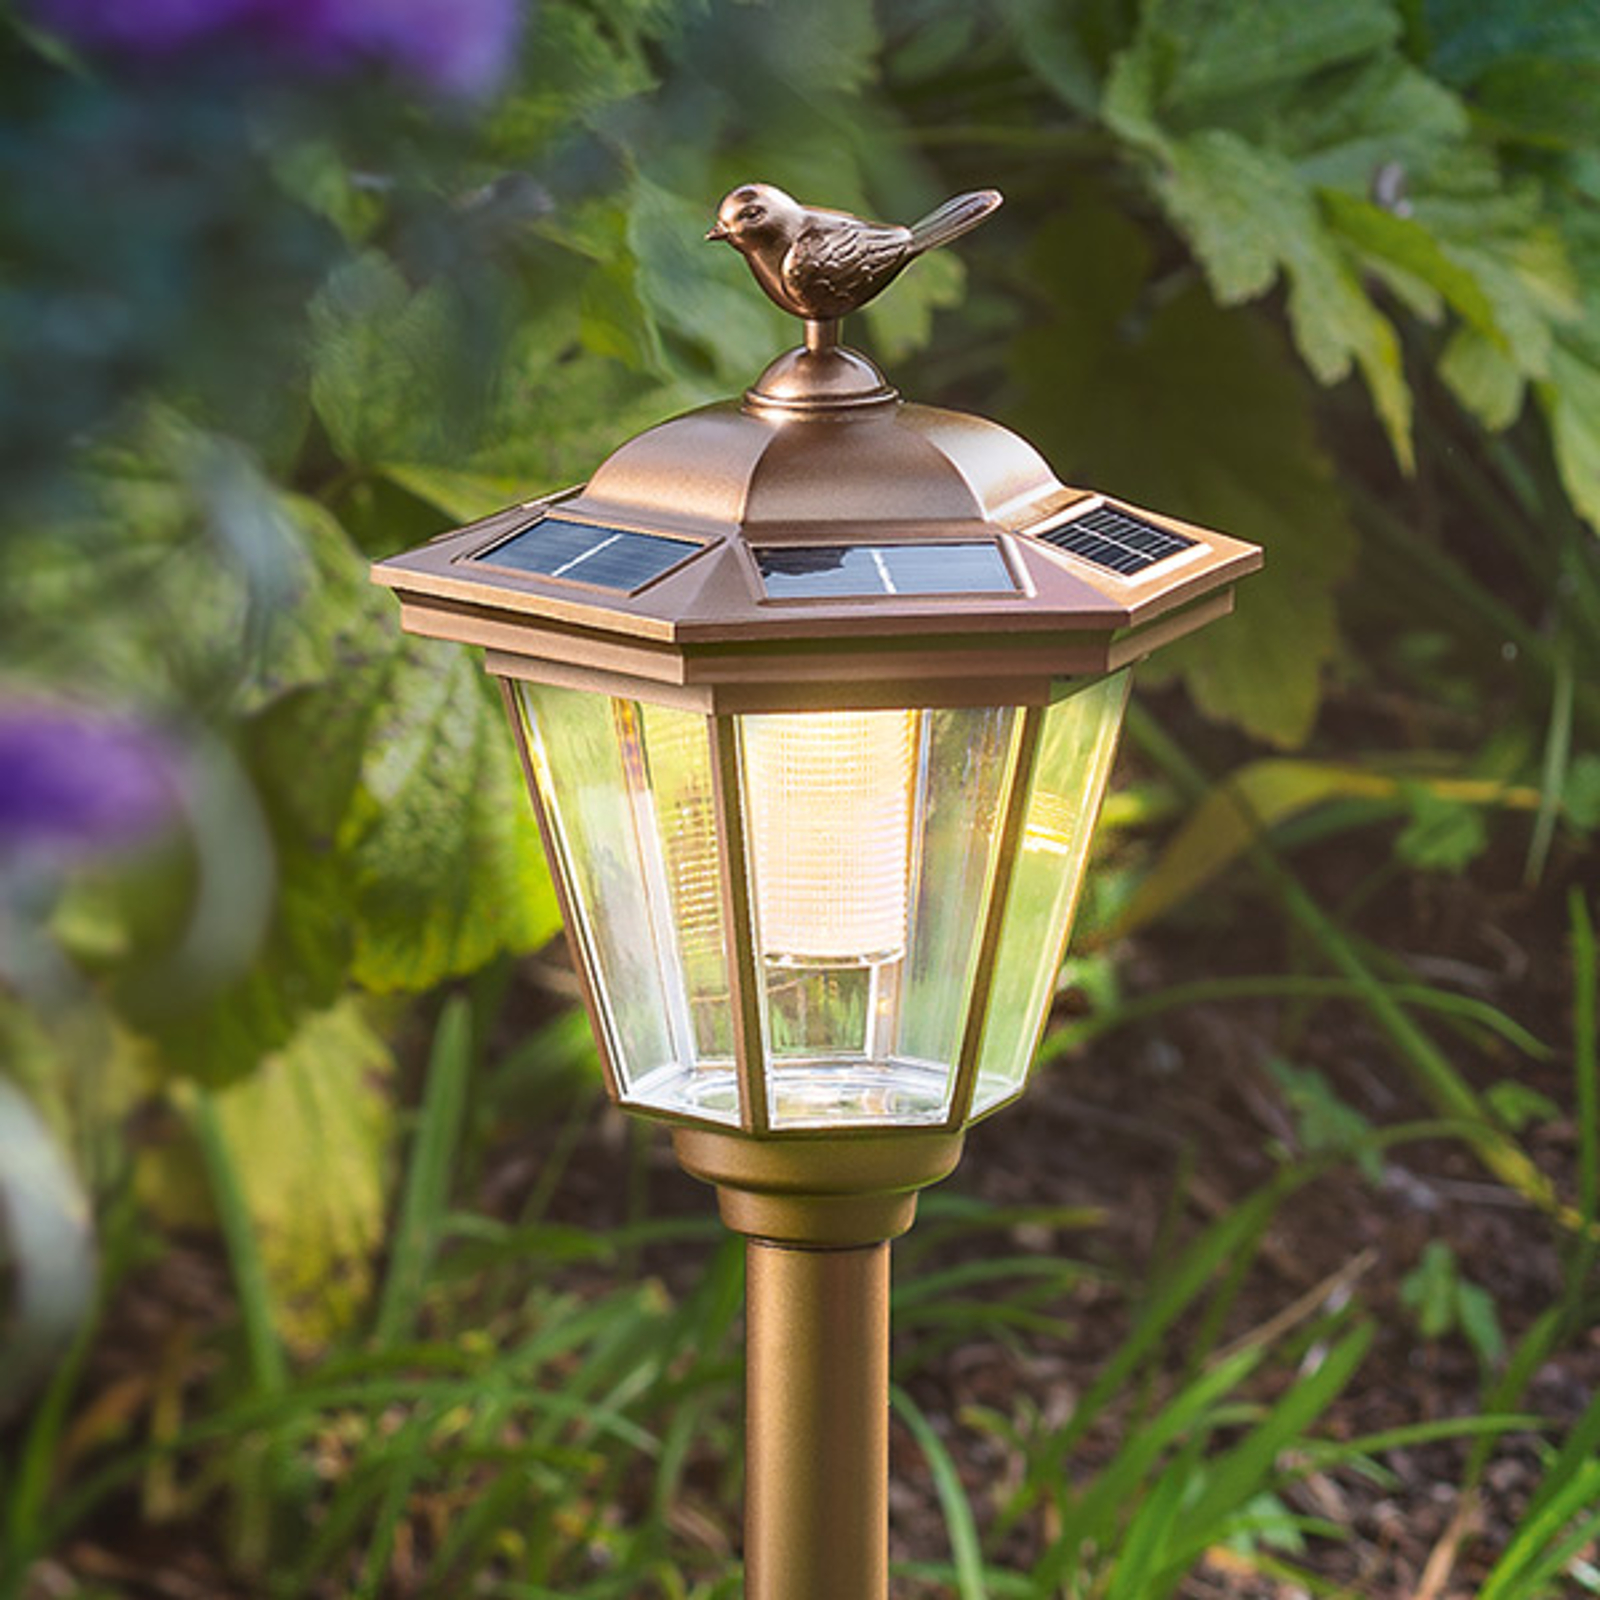 Solar LED-grondspieslamp Tivoli in koperlook